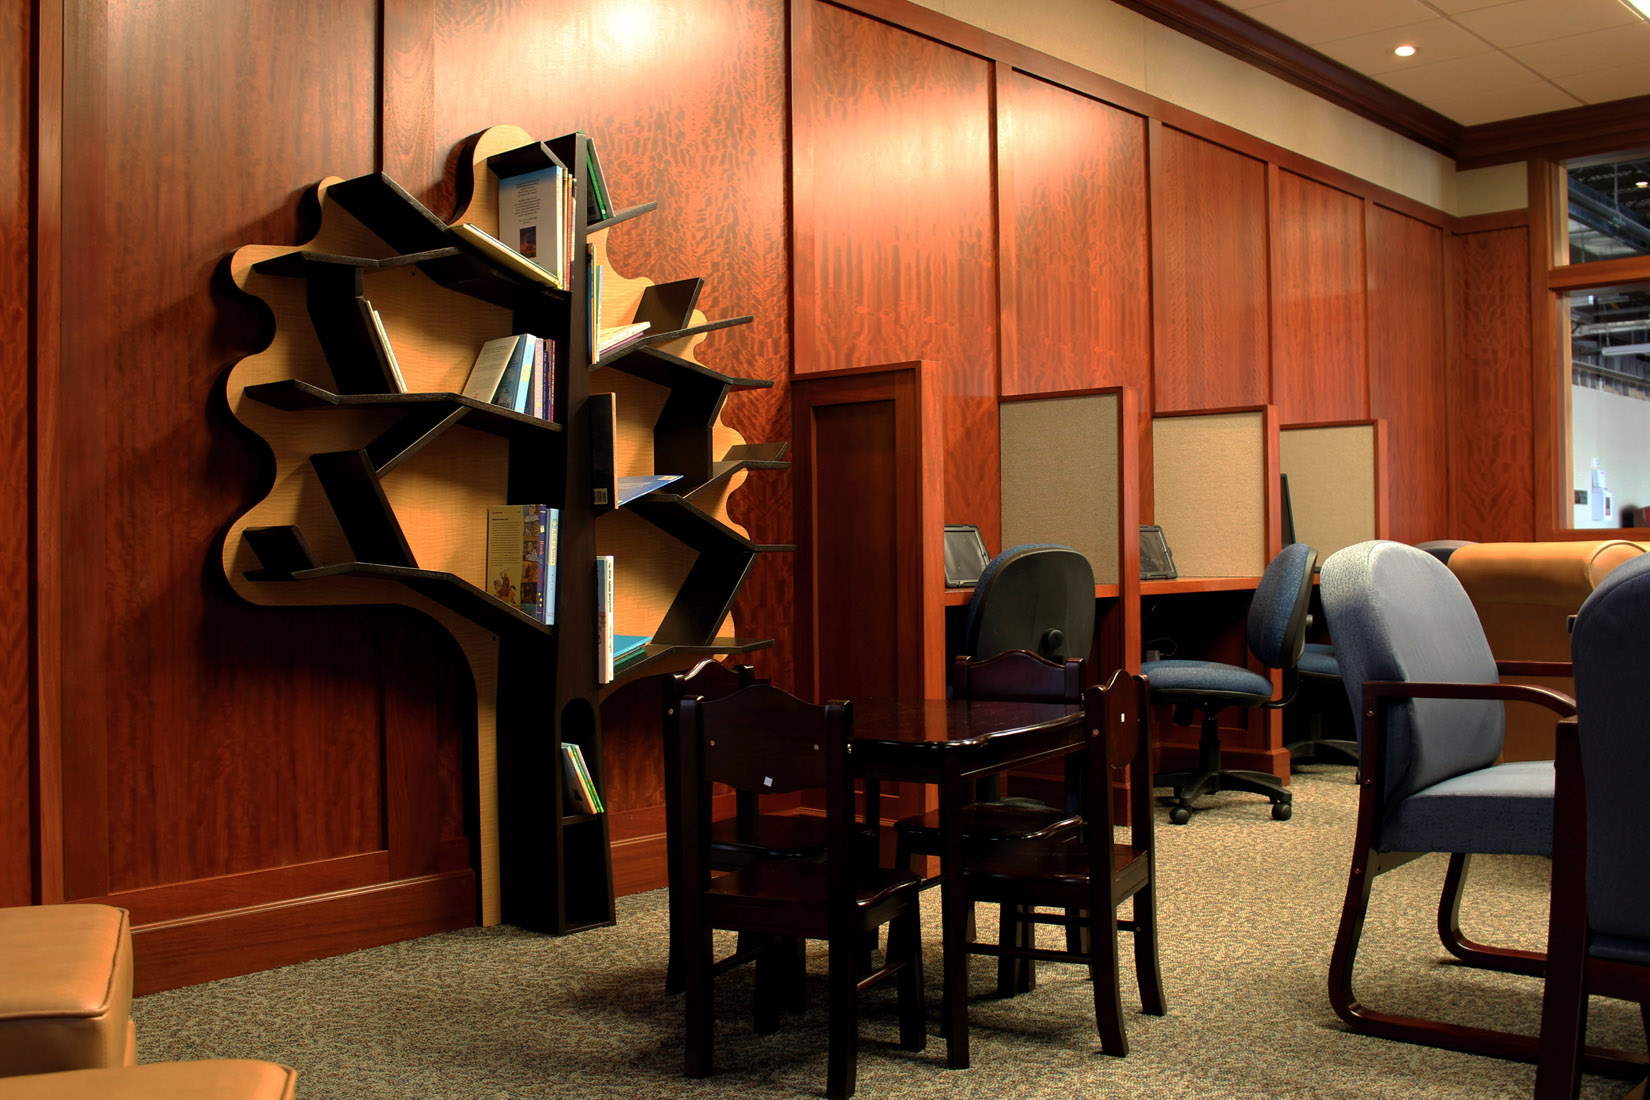 ICC_Library_West_Wall_Tree_MD.jpg